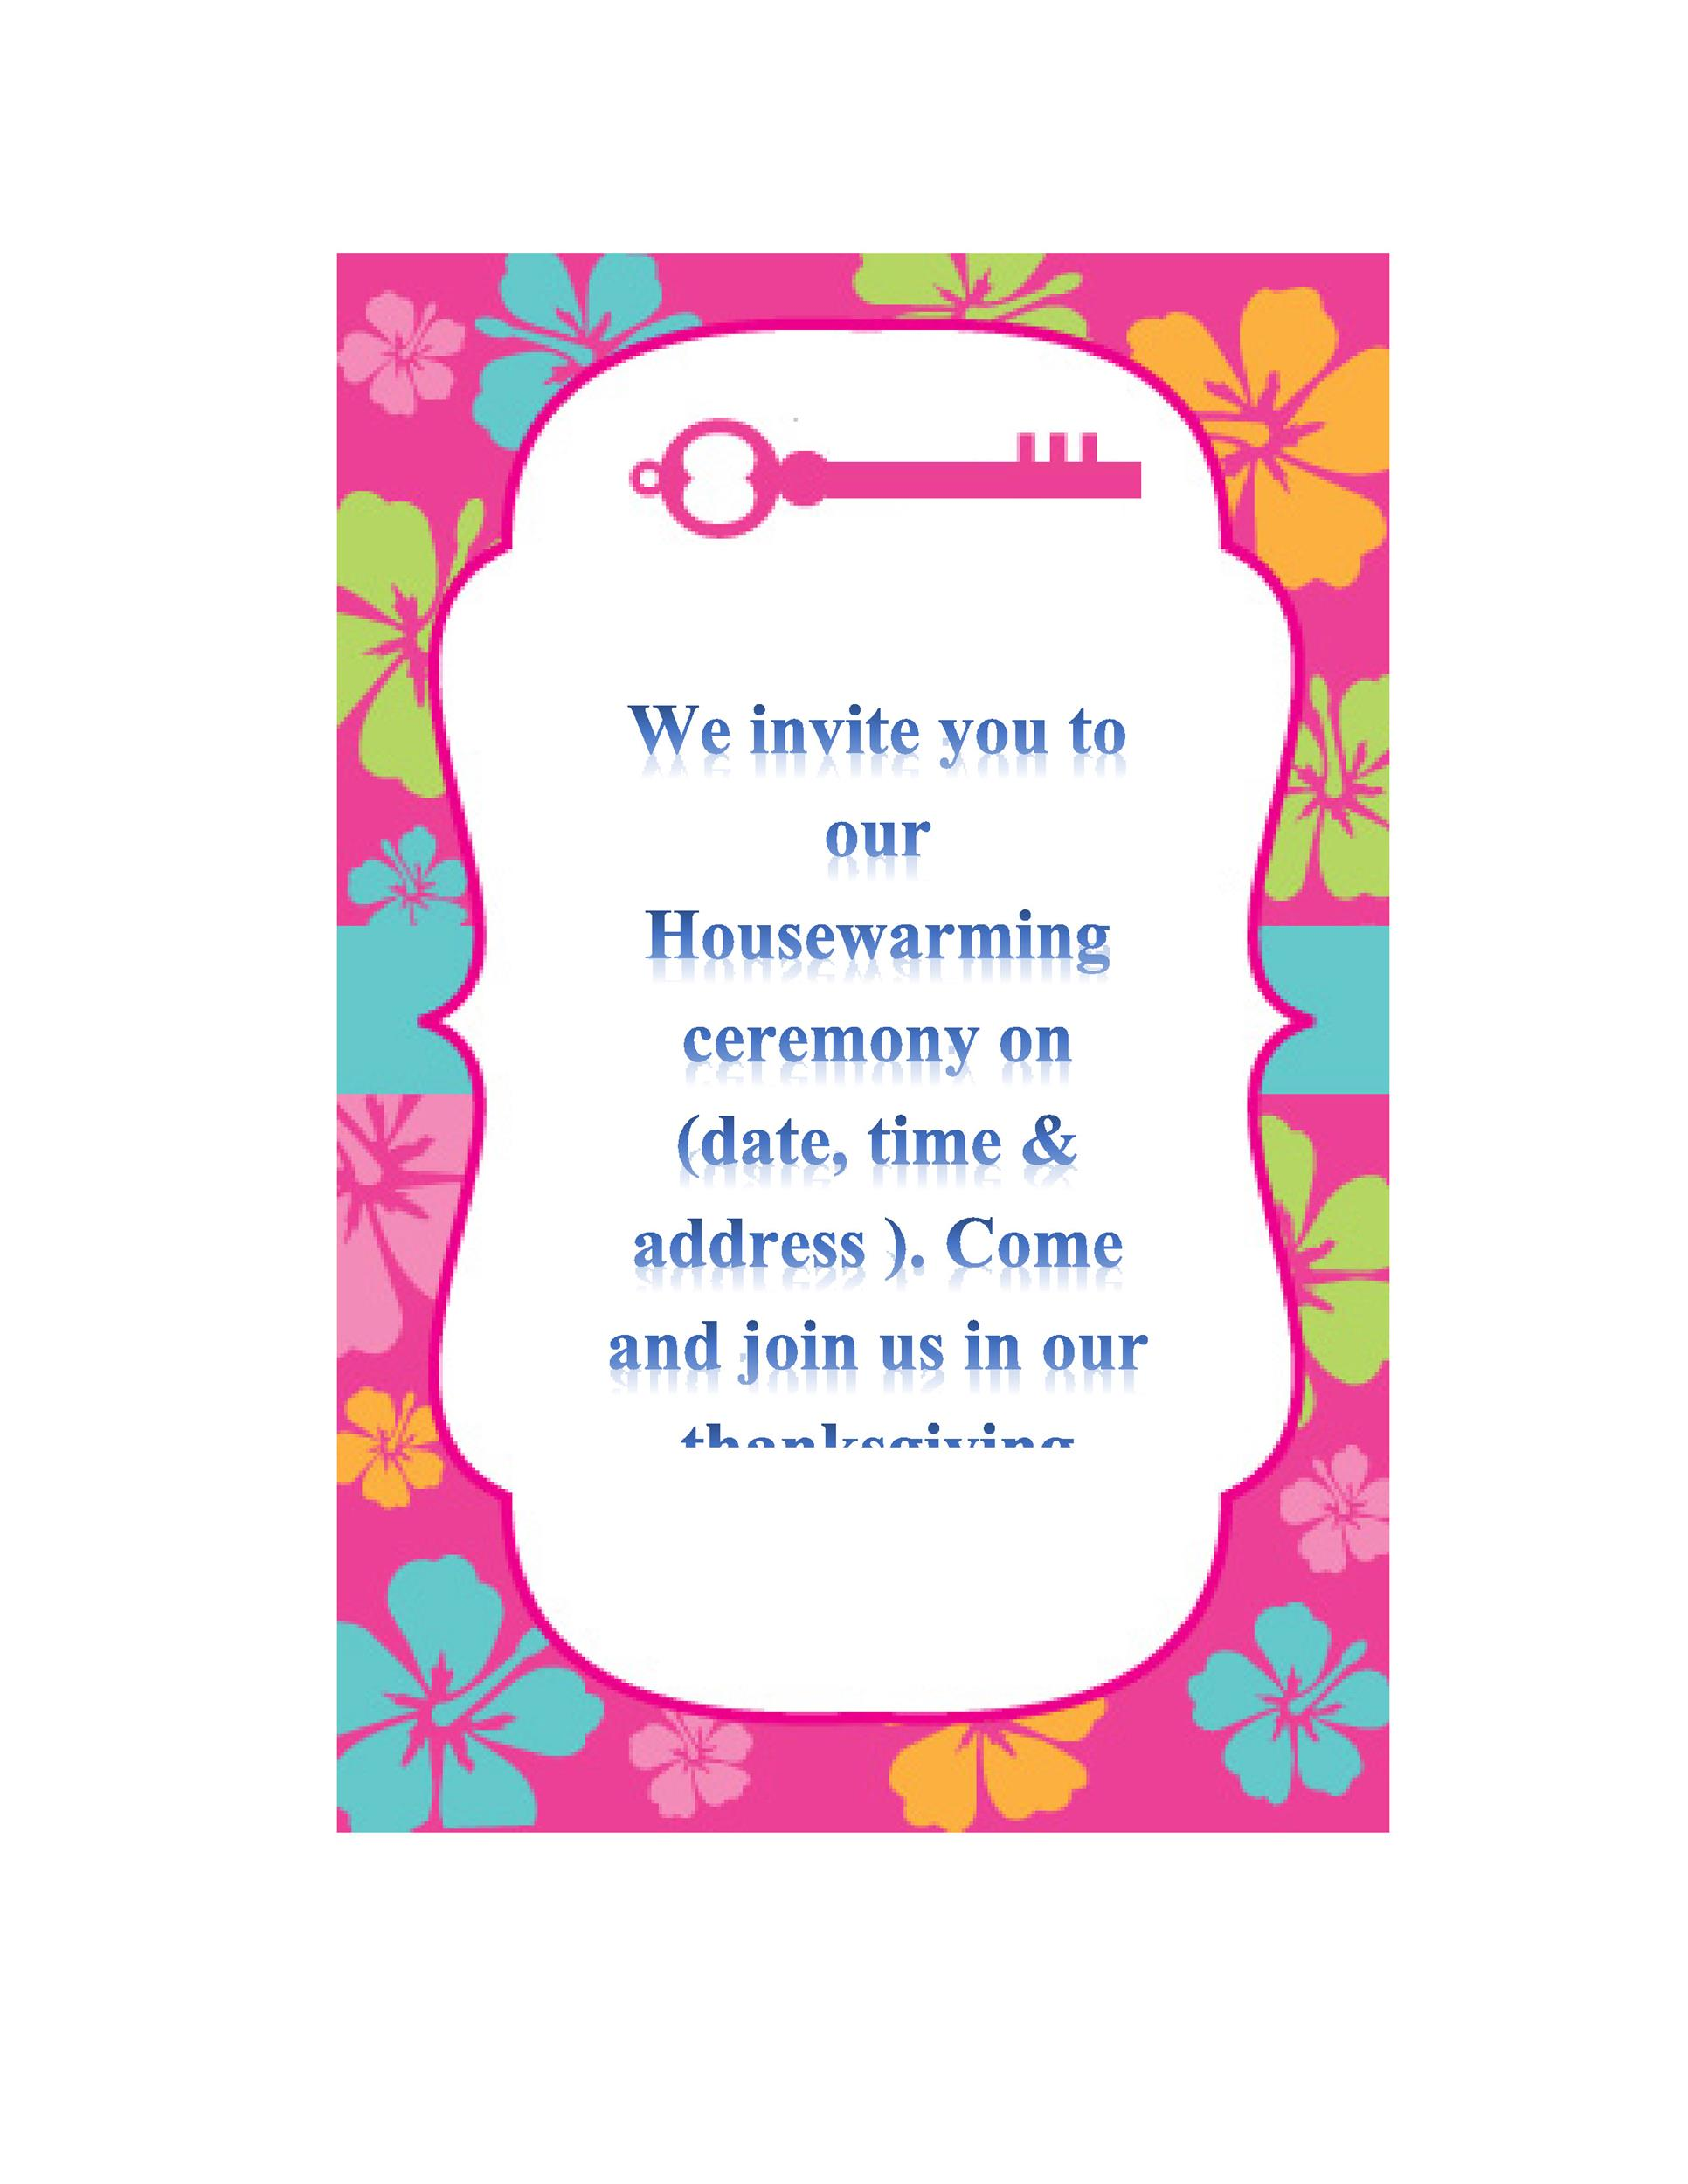 Housewarming Invitation Template | 40 Free Printable Housewarming Party Invitation Templates